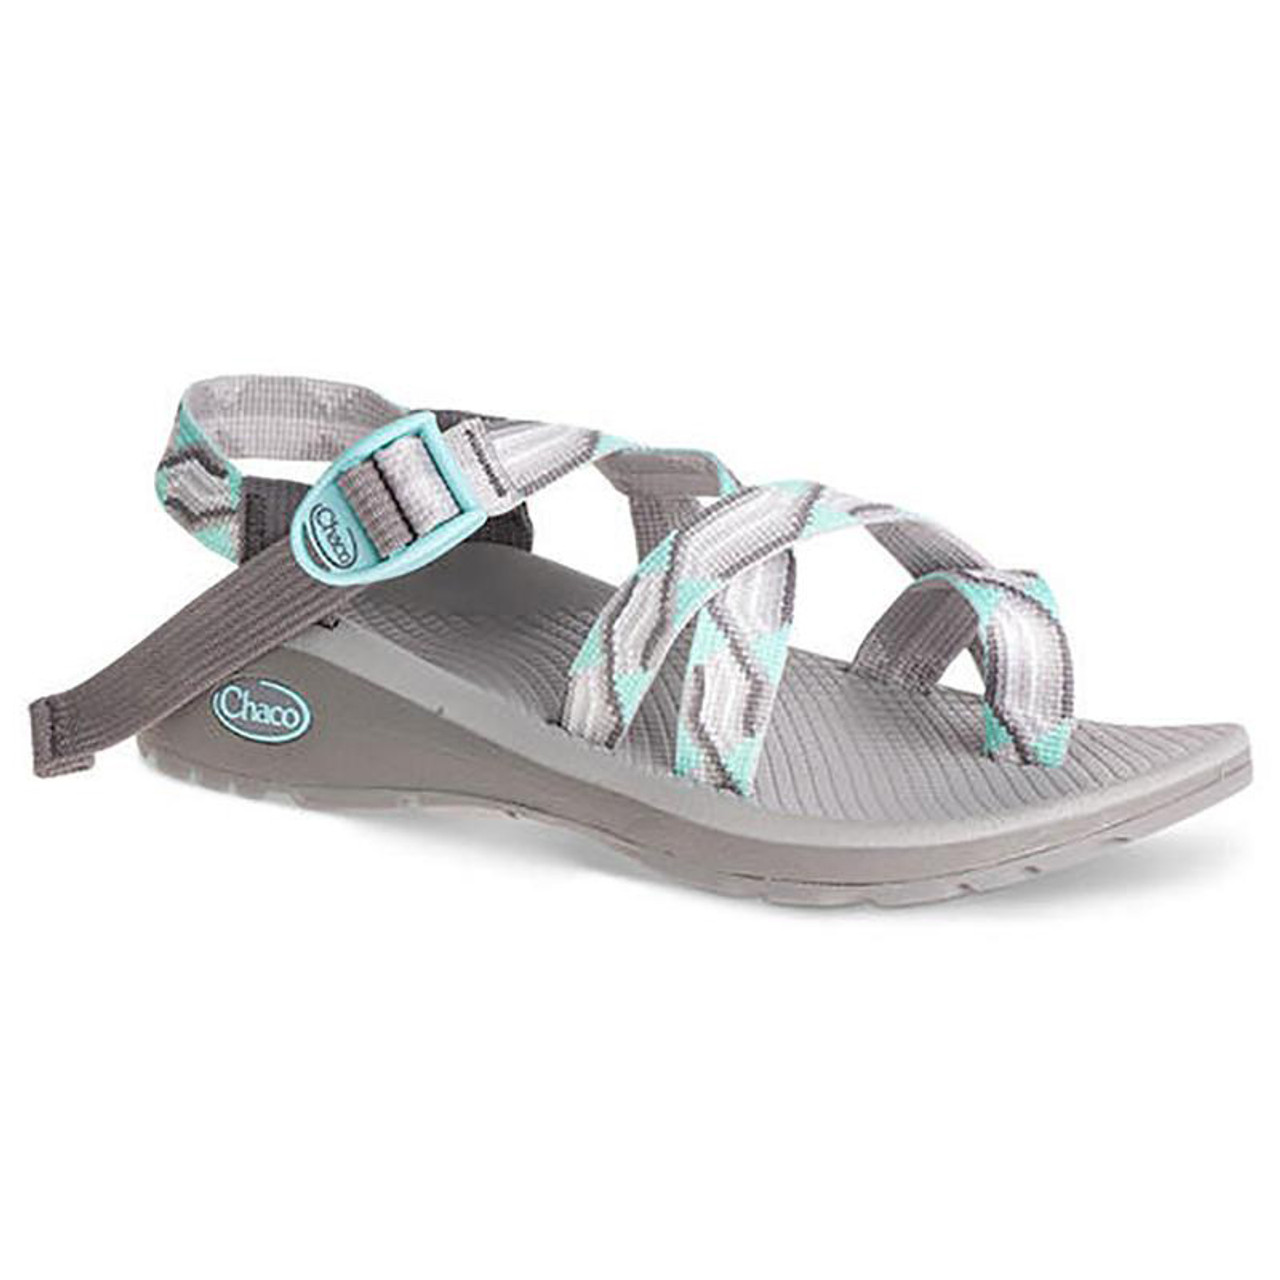 8b949597bff2 Chaco Women s Sandal - Z Cloud 2 - Candy Grey - Surf and Dirt